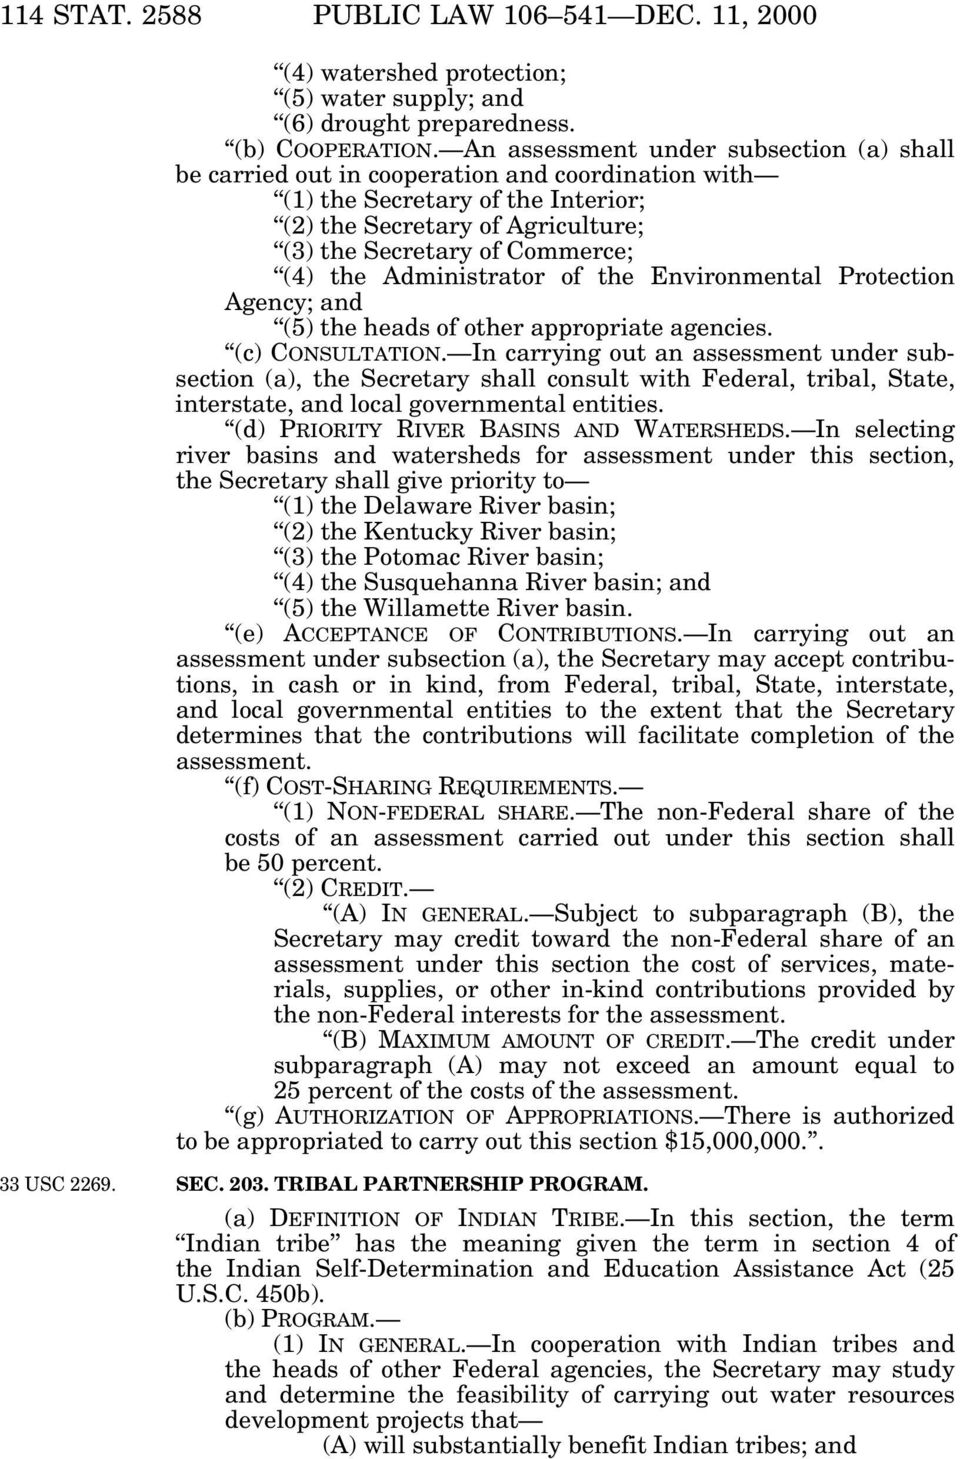 the Administrator of the Environmental Protection Agency; and (5) the heads of other appropriate agencies. (c) CONSULTATION.